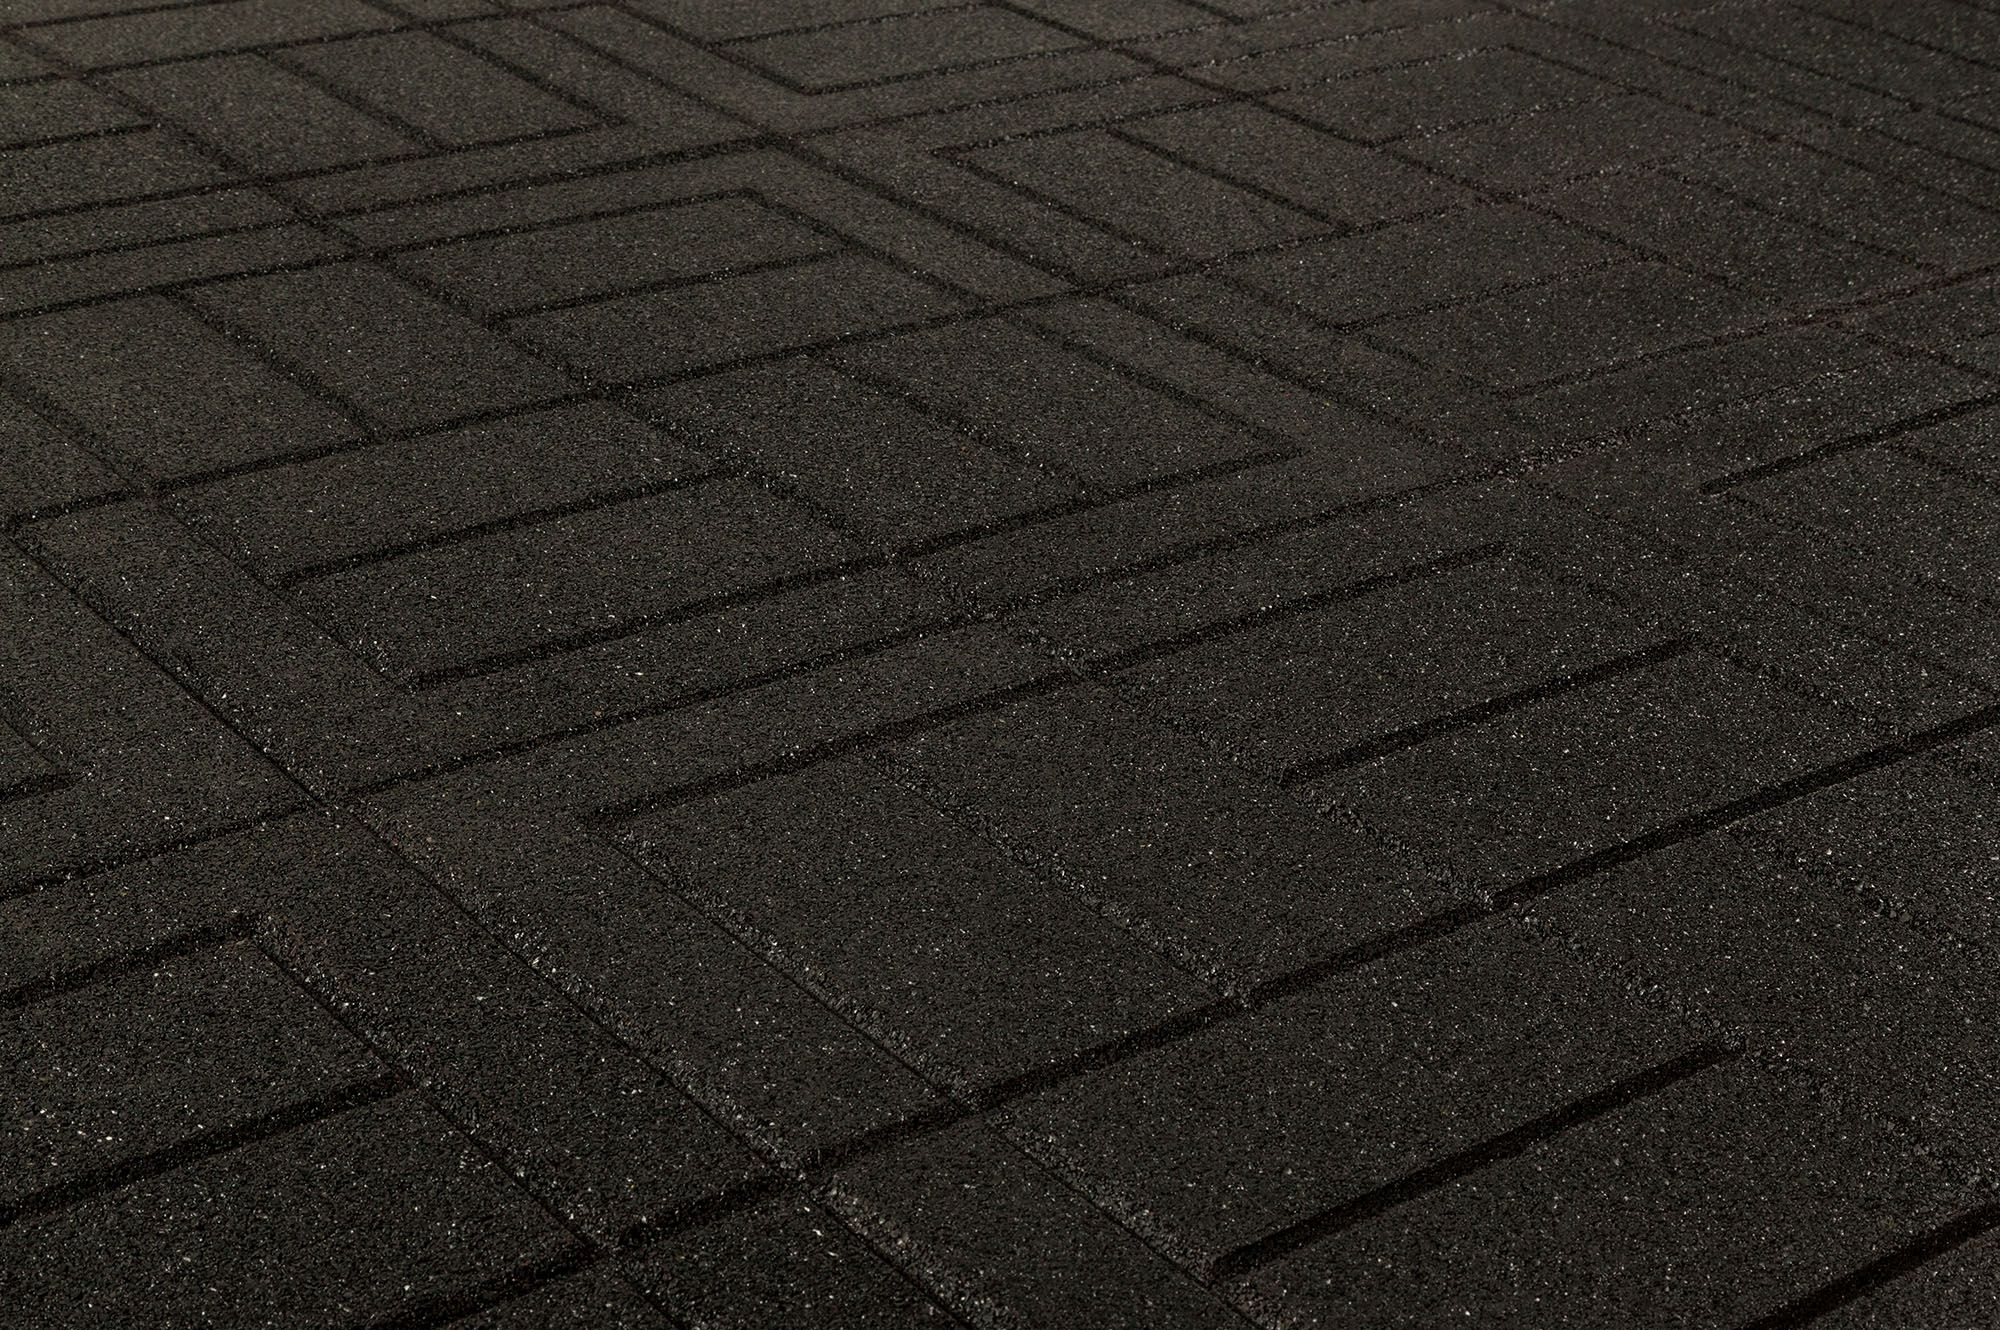 Brava Outdoor Interlocking Rubber Pavers With Images Rubber